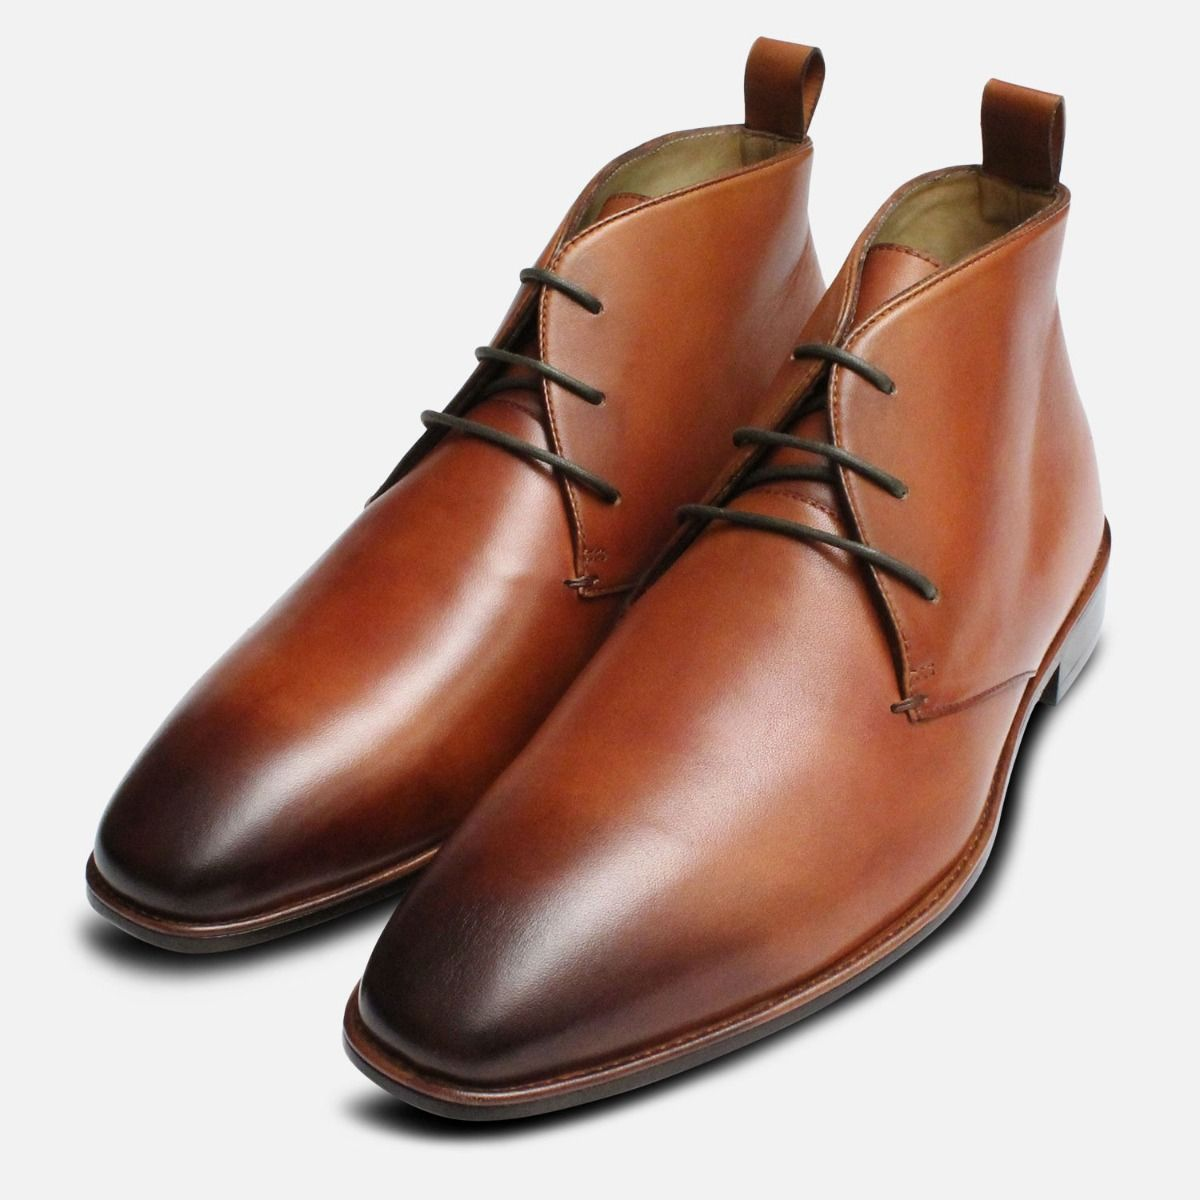 b1707dc2979 Tan Leather Chukka Boots for Men